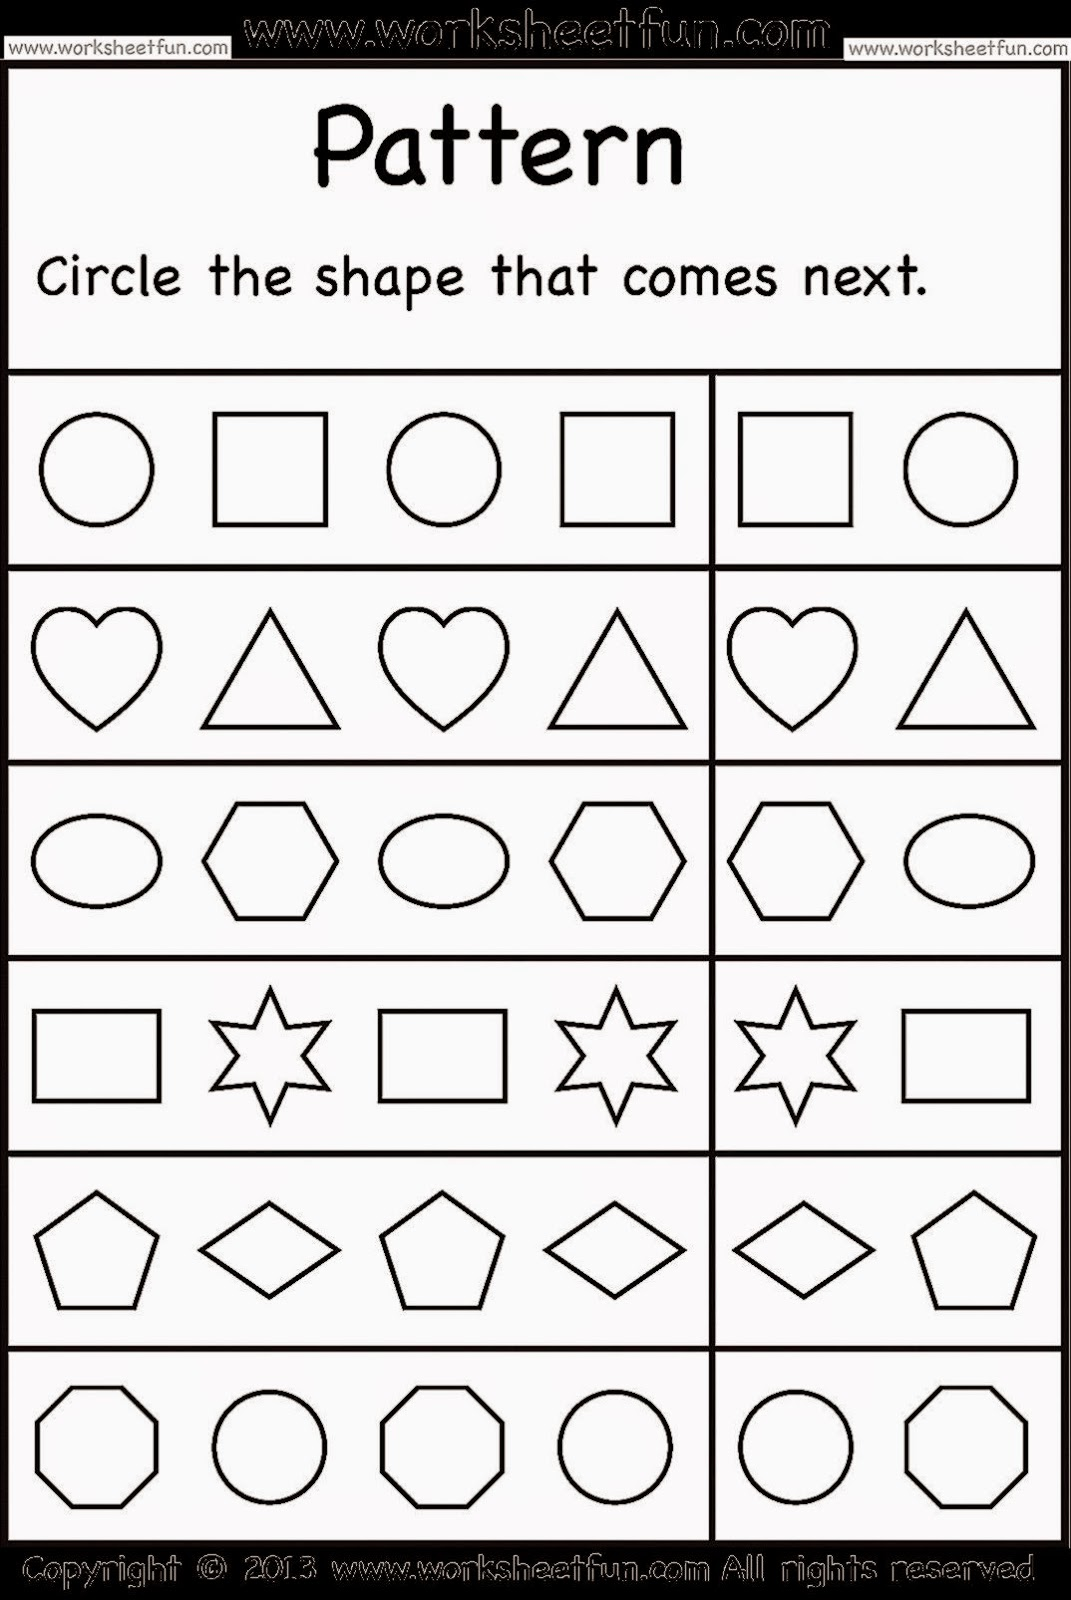 Worksheets Kindergarten Worksheets Free Printable printable kindergarten worksheets for preschool 7 best images of fun free printing letters kindergarten